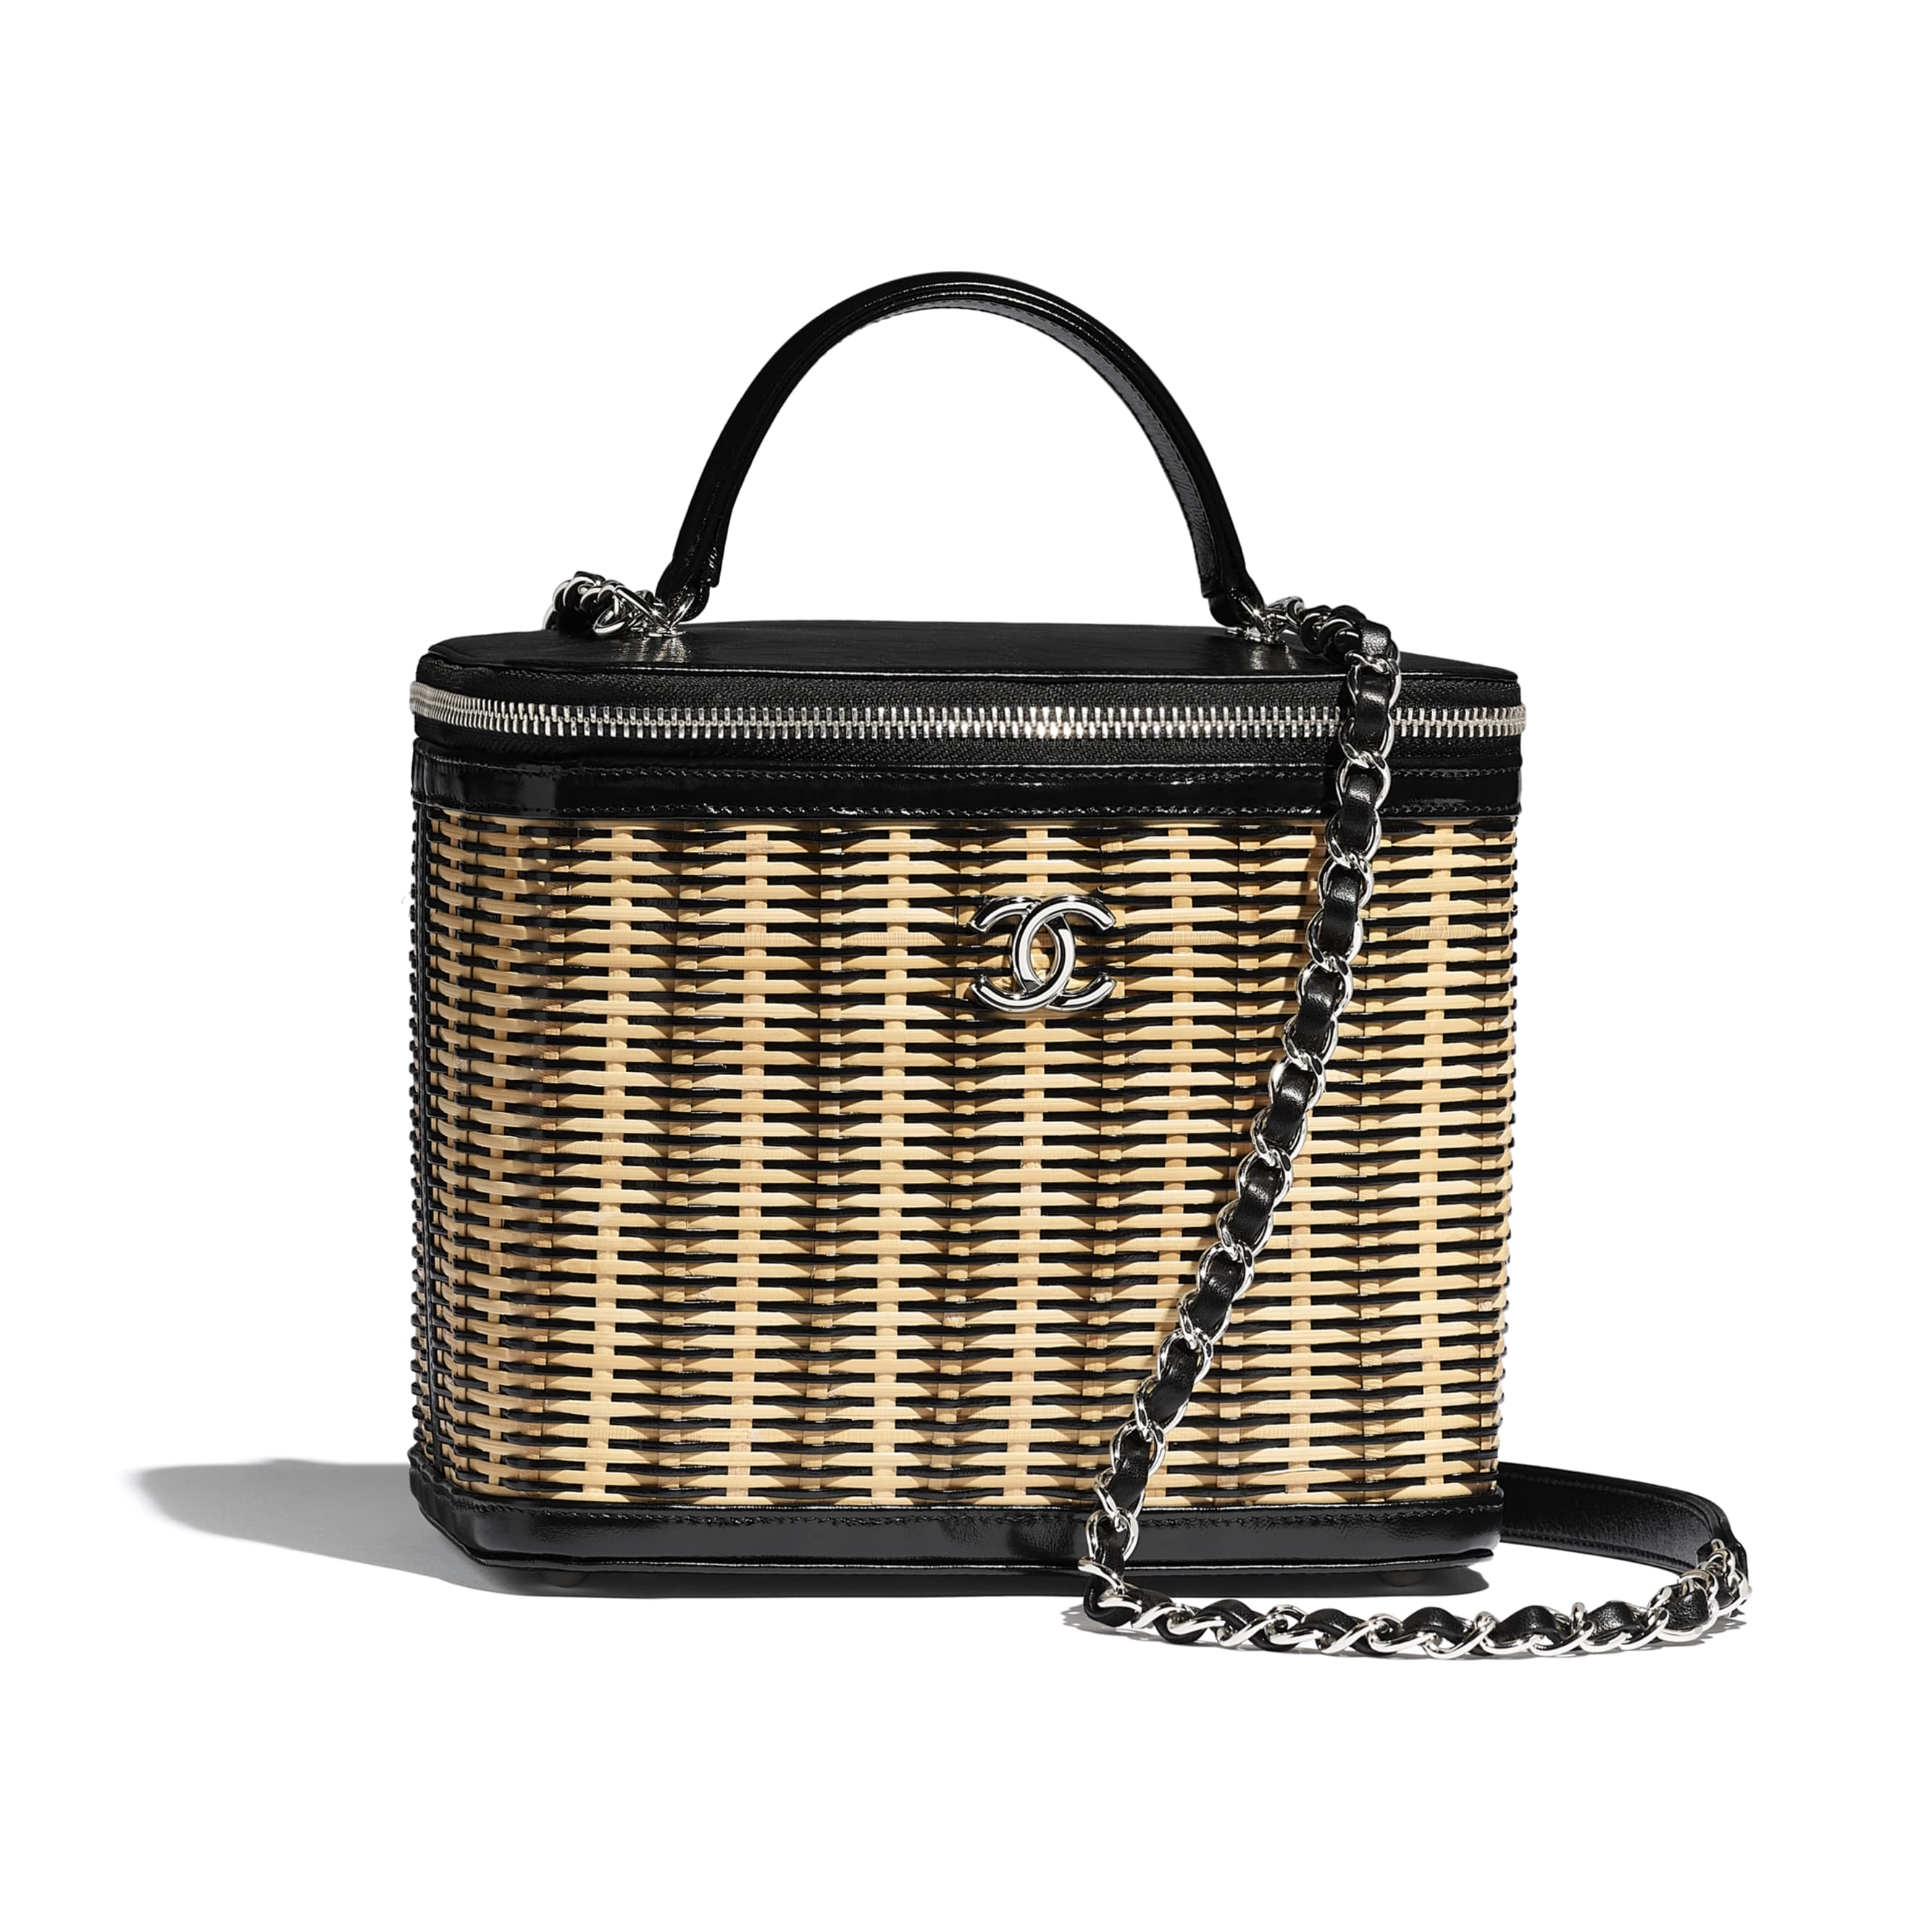 Vanity Case - Beige & Black - Rattan, Calfskin & Silver-Tone Metal - CHANEL - Default view - see standard sized version